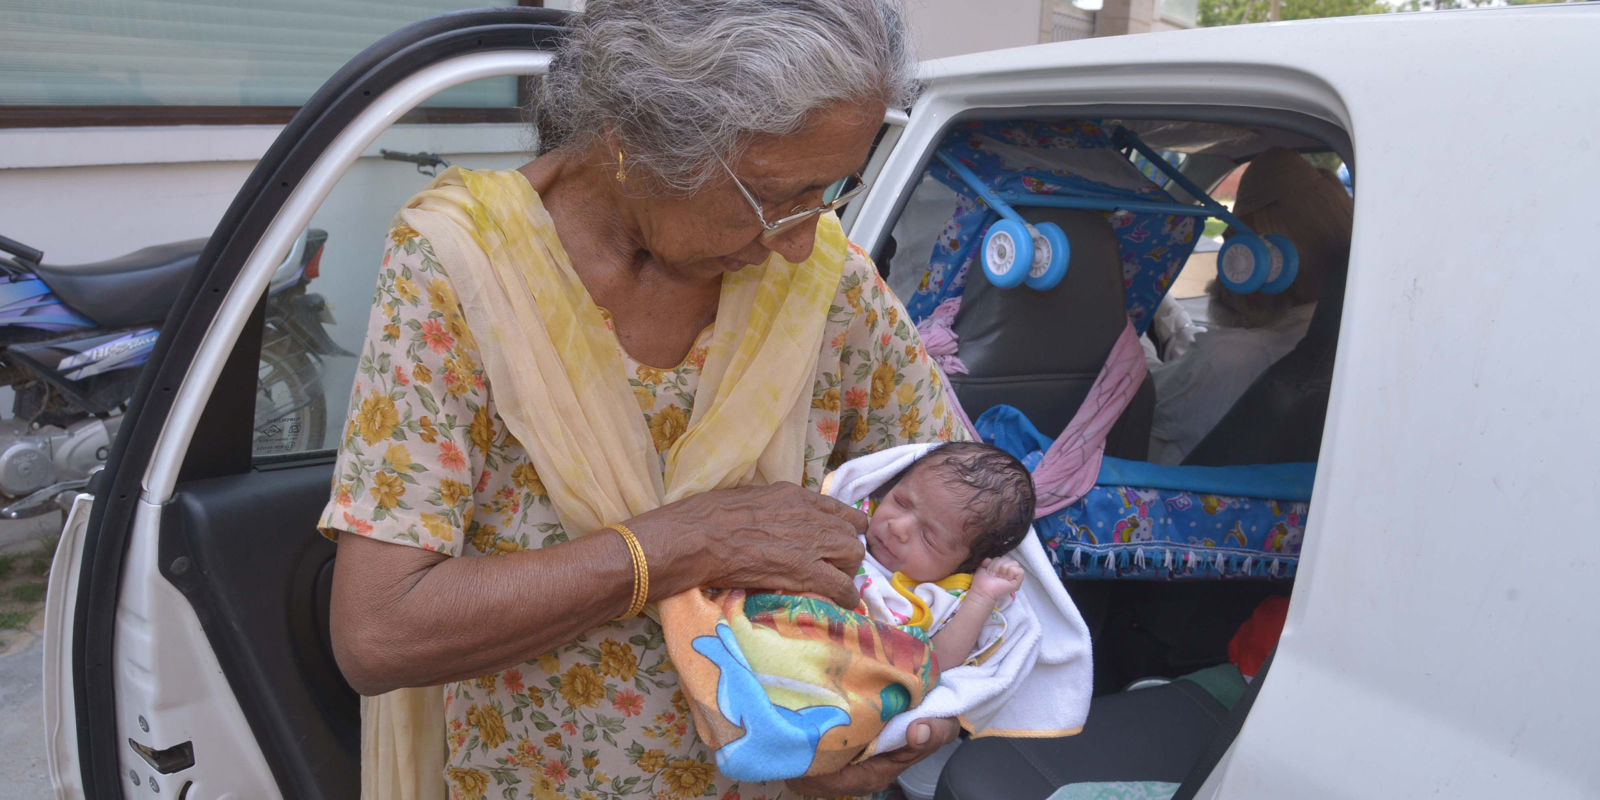 A Woman in Her Seventies Just Gave Birth to Her First Child